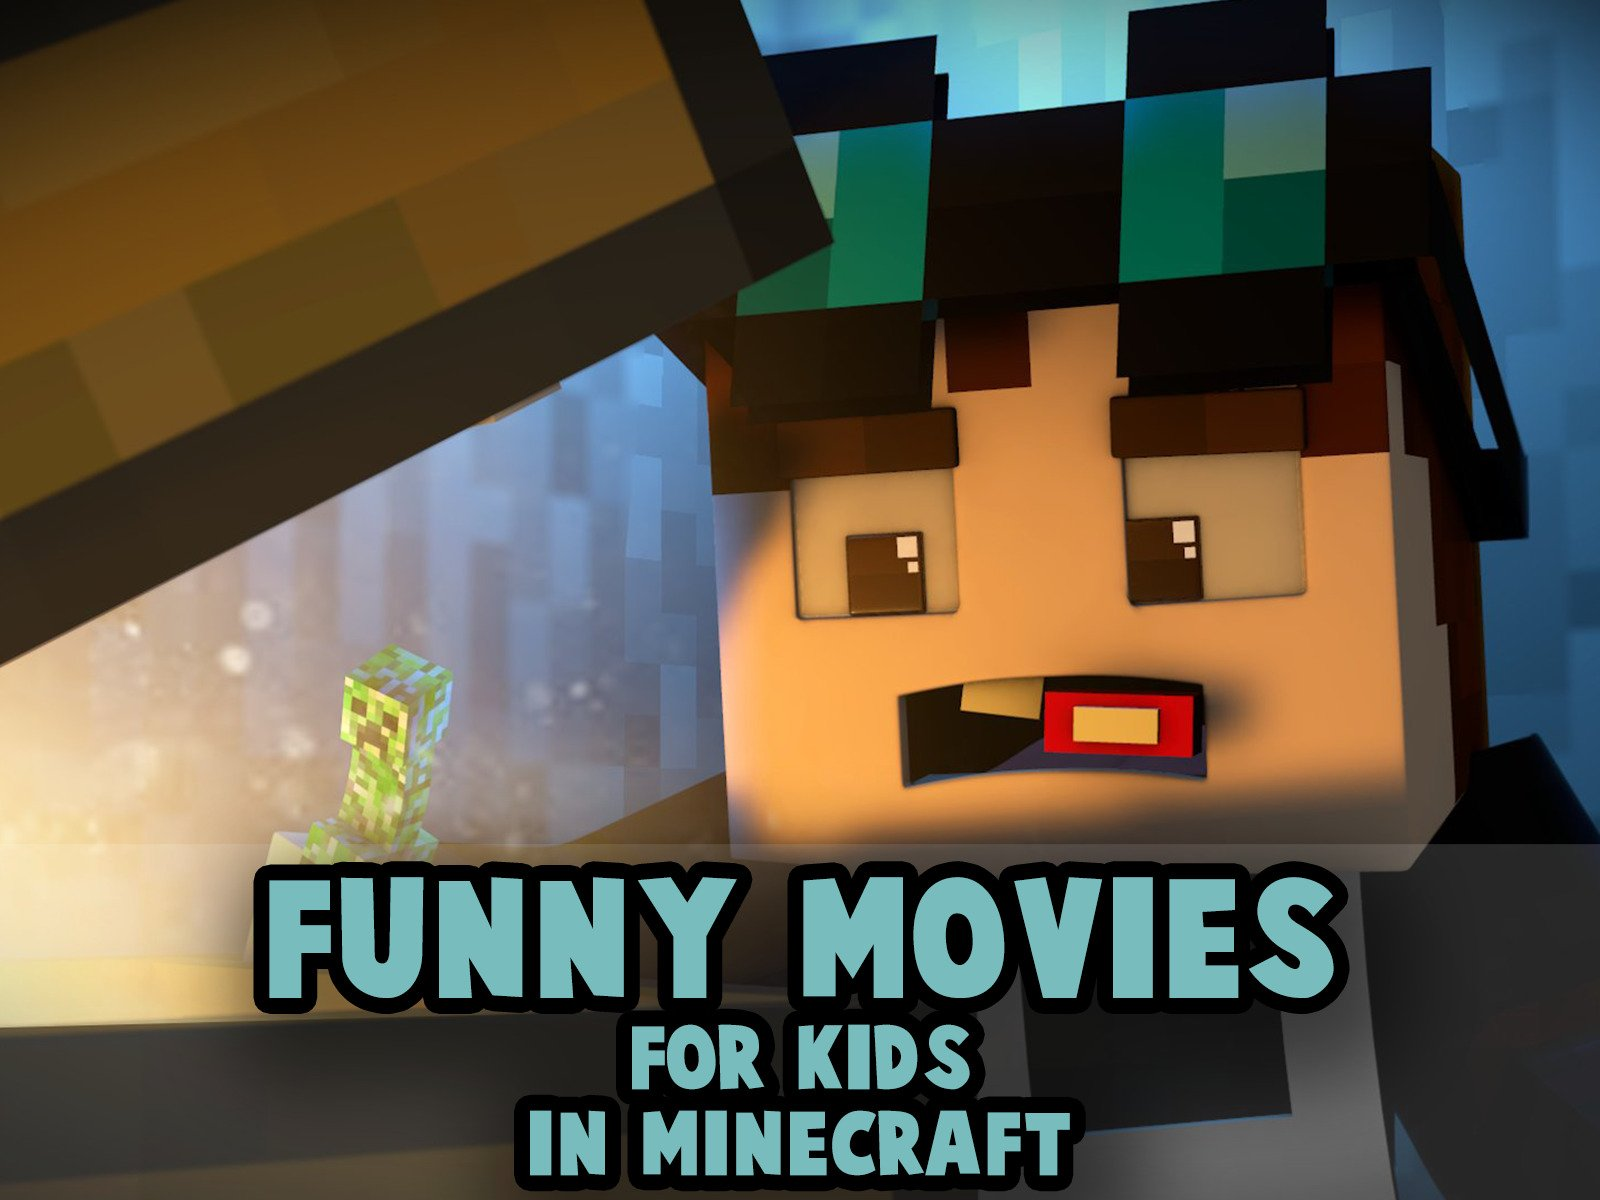 Clip: Funny Movies for Kids in Minecraft - Season 1